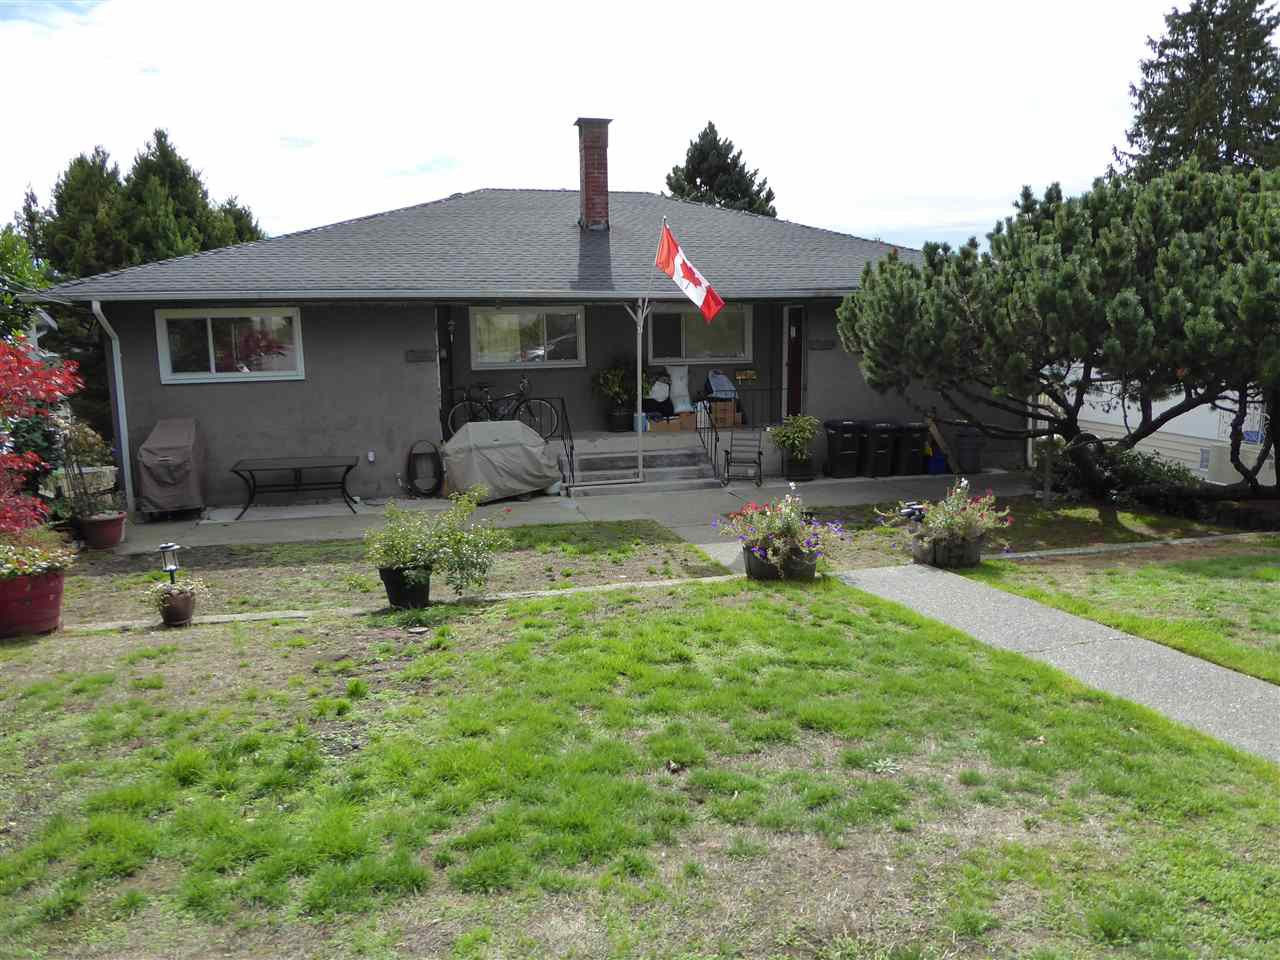 Main Photo: 5286 KEITH Street in Burnaby: South Slope House for sale (Burnaby South)  : MLS®# R2003691